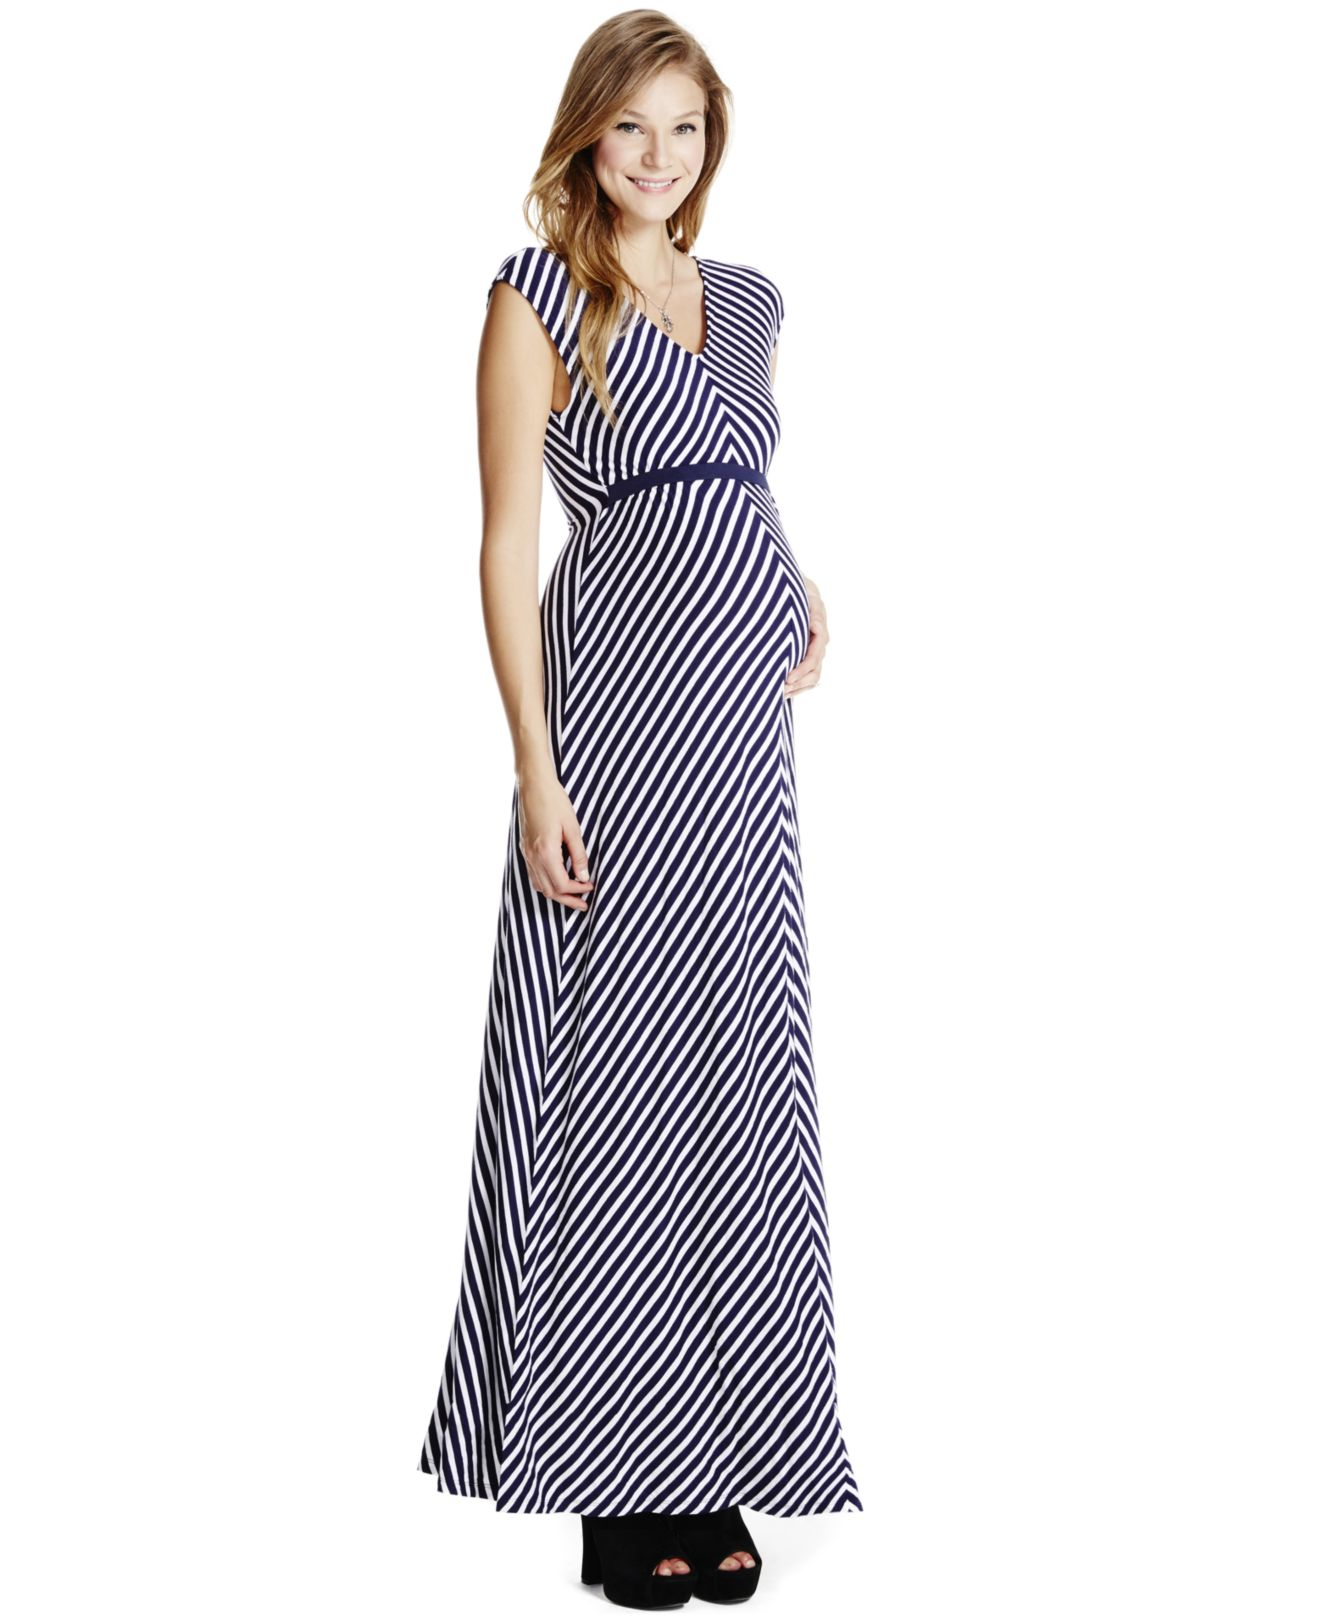 4e62c96faa4 Lyst - Jessica Simpson Maternity Printed Maxi Dress in Blue